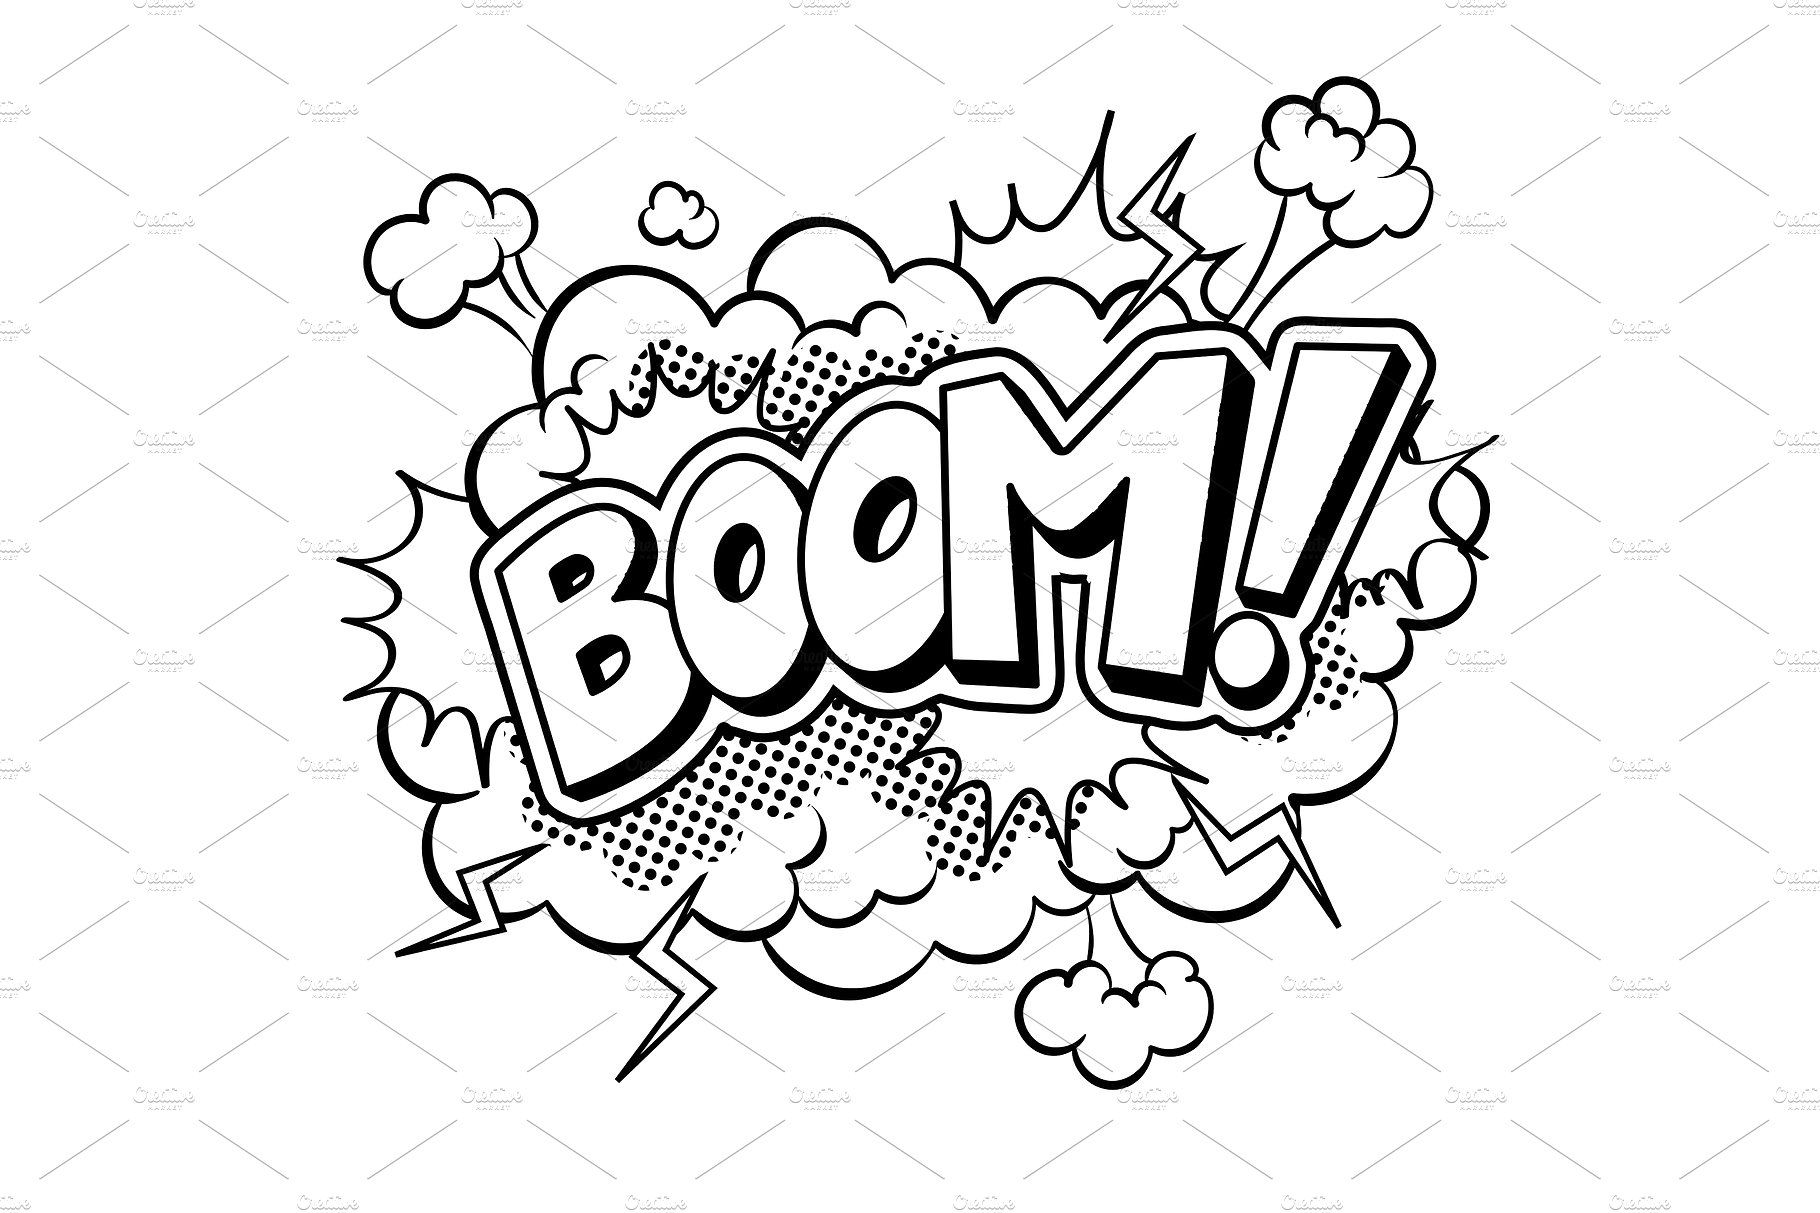 Boom word comic book coloring vector illustration by